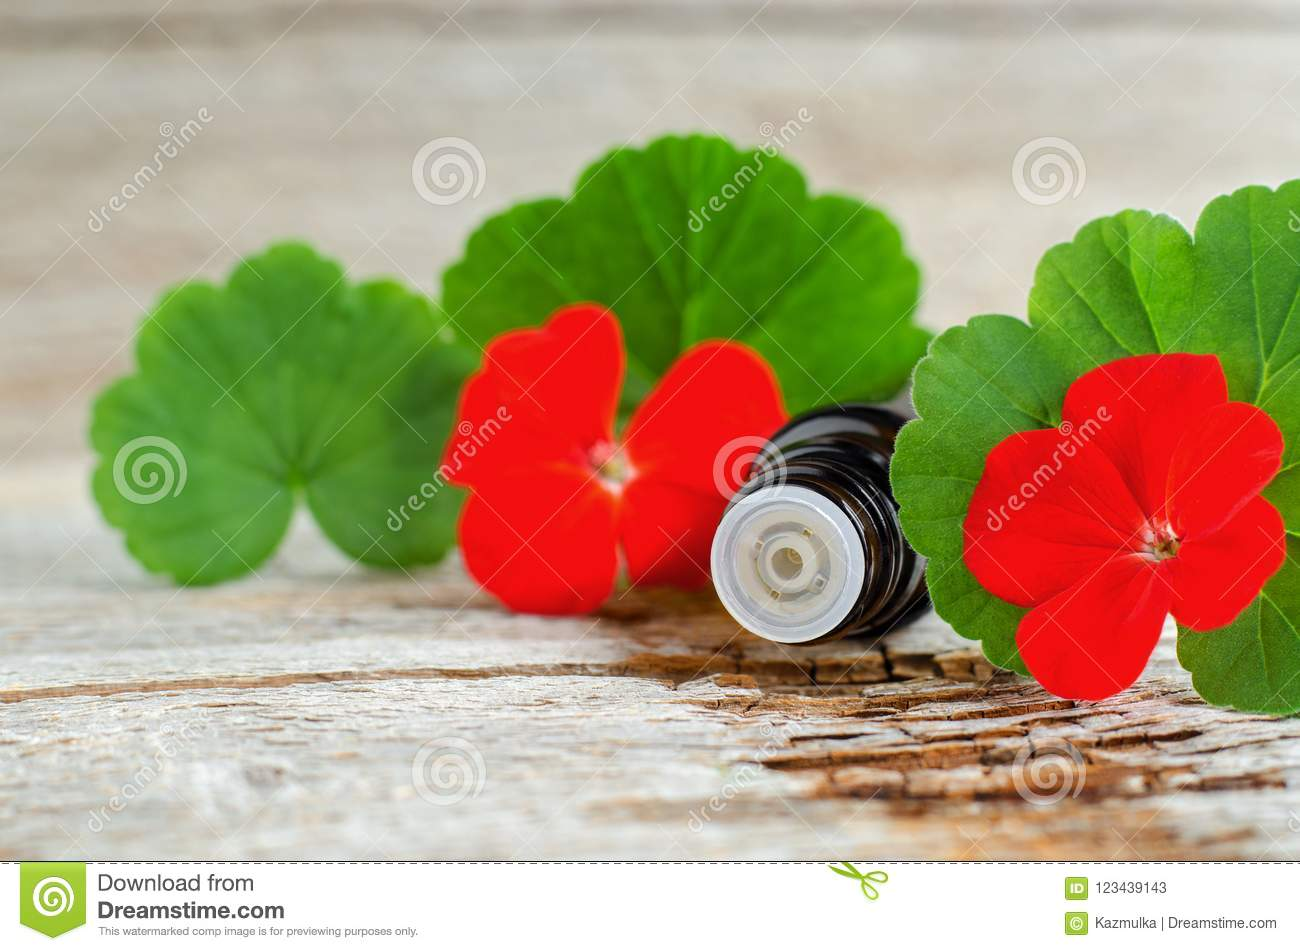 Small glass bottle with essential geranium oil on the old wooden background. Geranium leaves and flowers, close up.